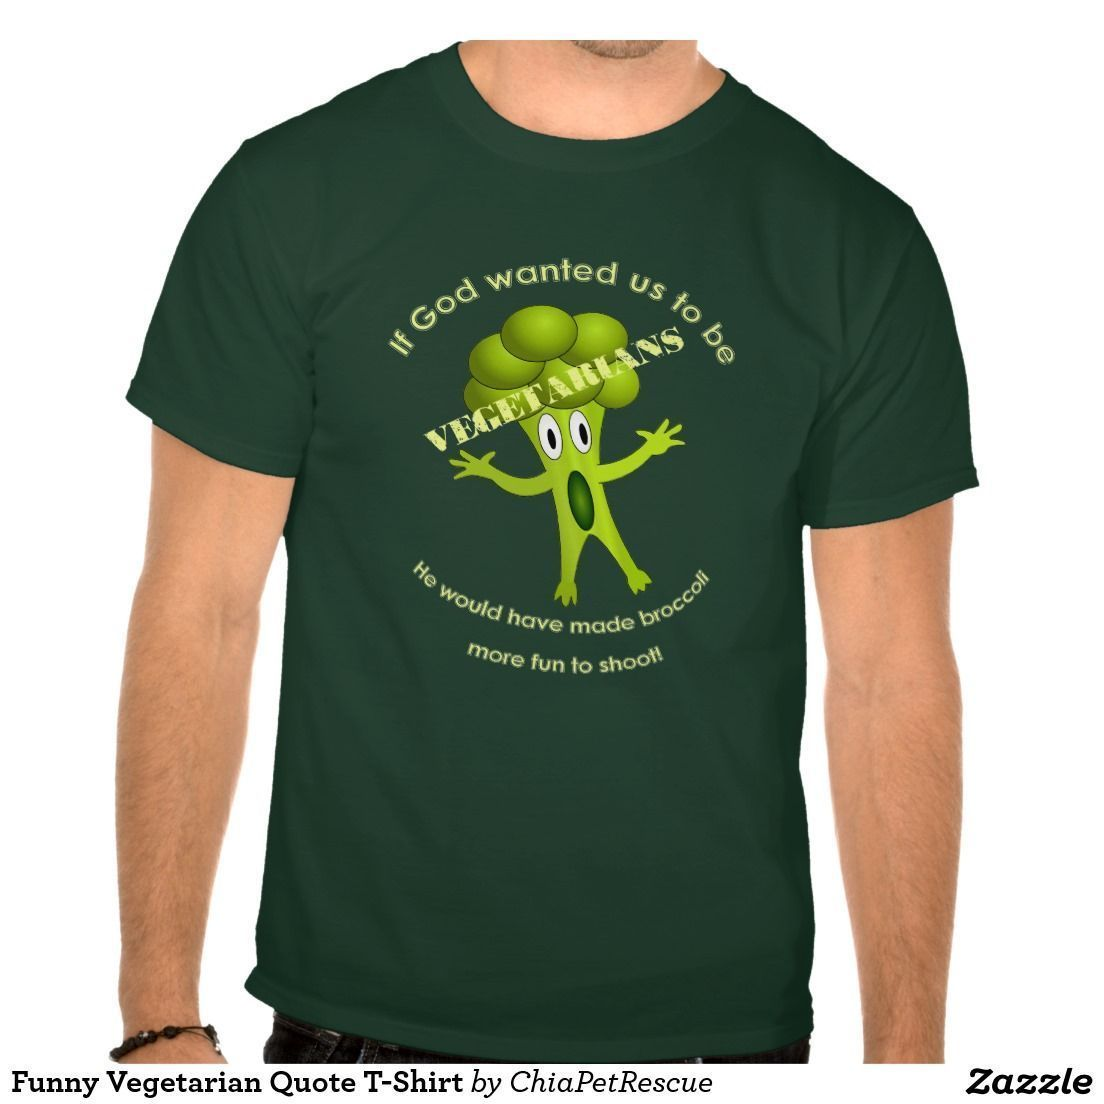 #vegetarian #zazzlecom #tshirt #funny #quoteFunny Vegetarian Quote T-Shirt |  Funny Vegetarian Quote T-Shirt #vegetarianquotes #vegetarian #zazzlecom #tshirt #funny #quoteFunny Vegetarian Quote T-Shirt |  Funny Vegetarian Quote T-Shirt #vegetarianquotes #vegetarian #zazzlecom #tshirt #funny #quoteFunny Vegetarian Quote T-Shirt |  Funny Vegetarian Quote T-Shirt #vegetarianquotes #vegetarian #zazzlecom #tshirt #funny #quoteFunny Vegetarian Quote T-Shirt |  Funny Vegetarian Quote T-Shirt #vegetarianquotes